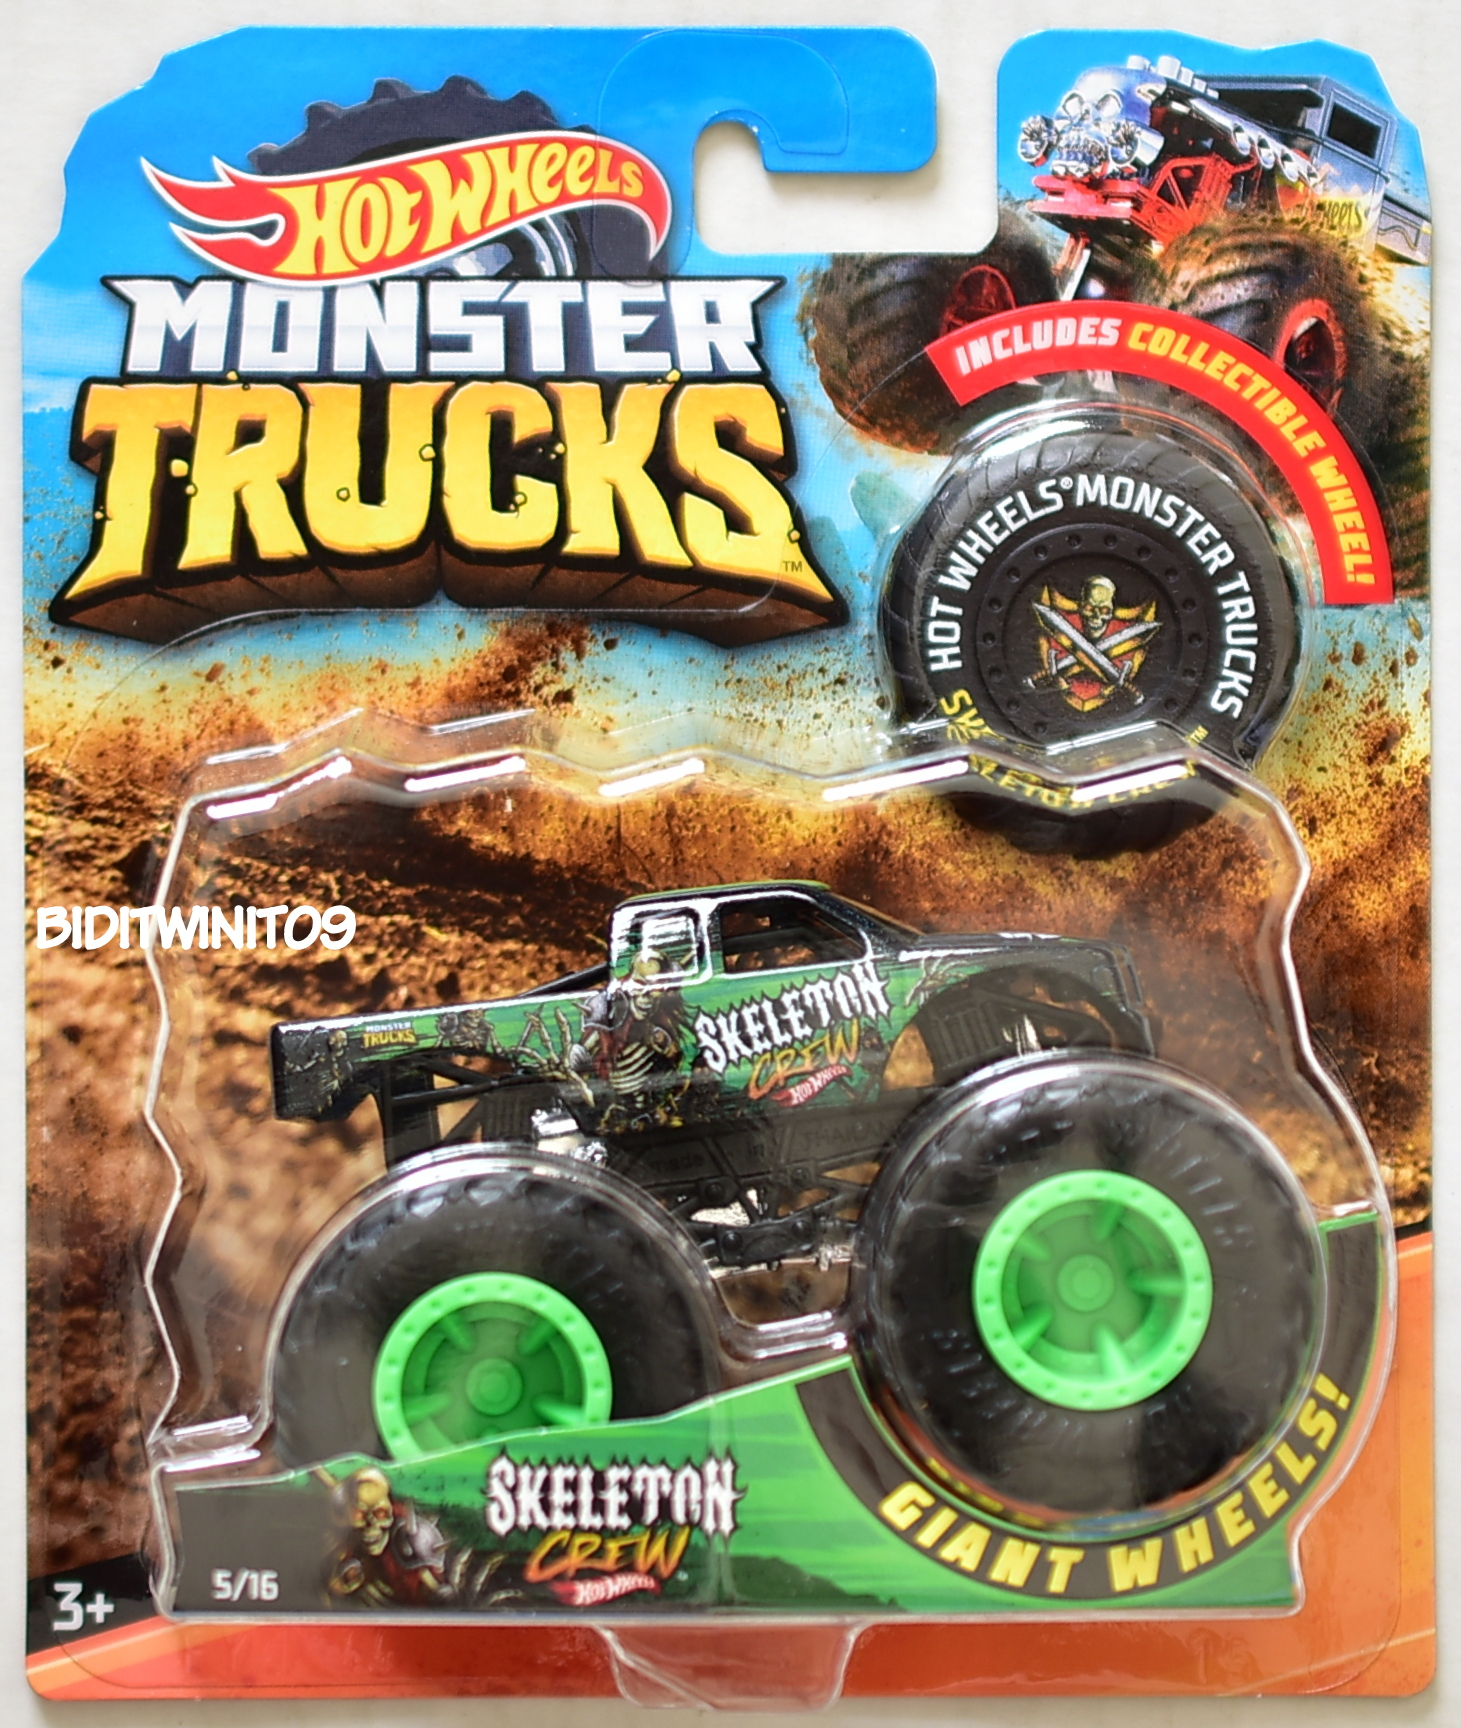 HOT WHEELS 2018 MONSTER TRUCKS GIANT WHEELS SKELETON CREW